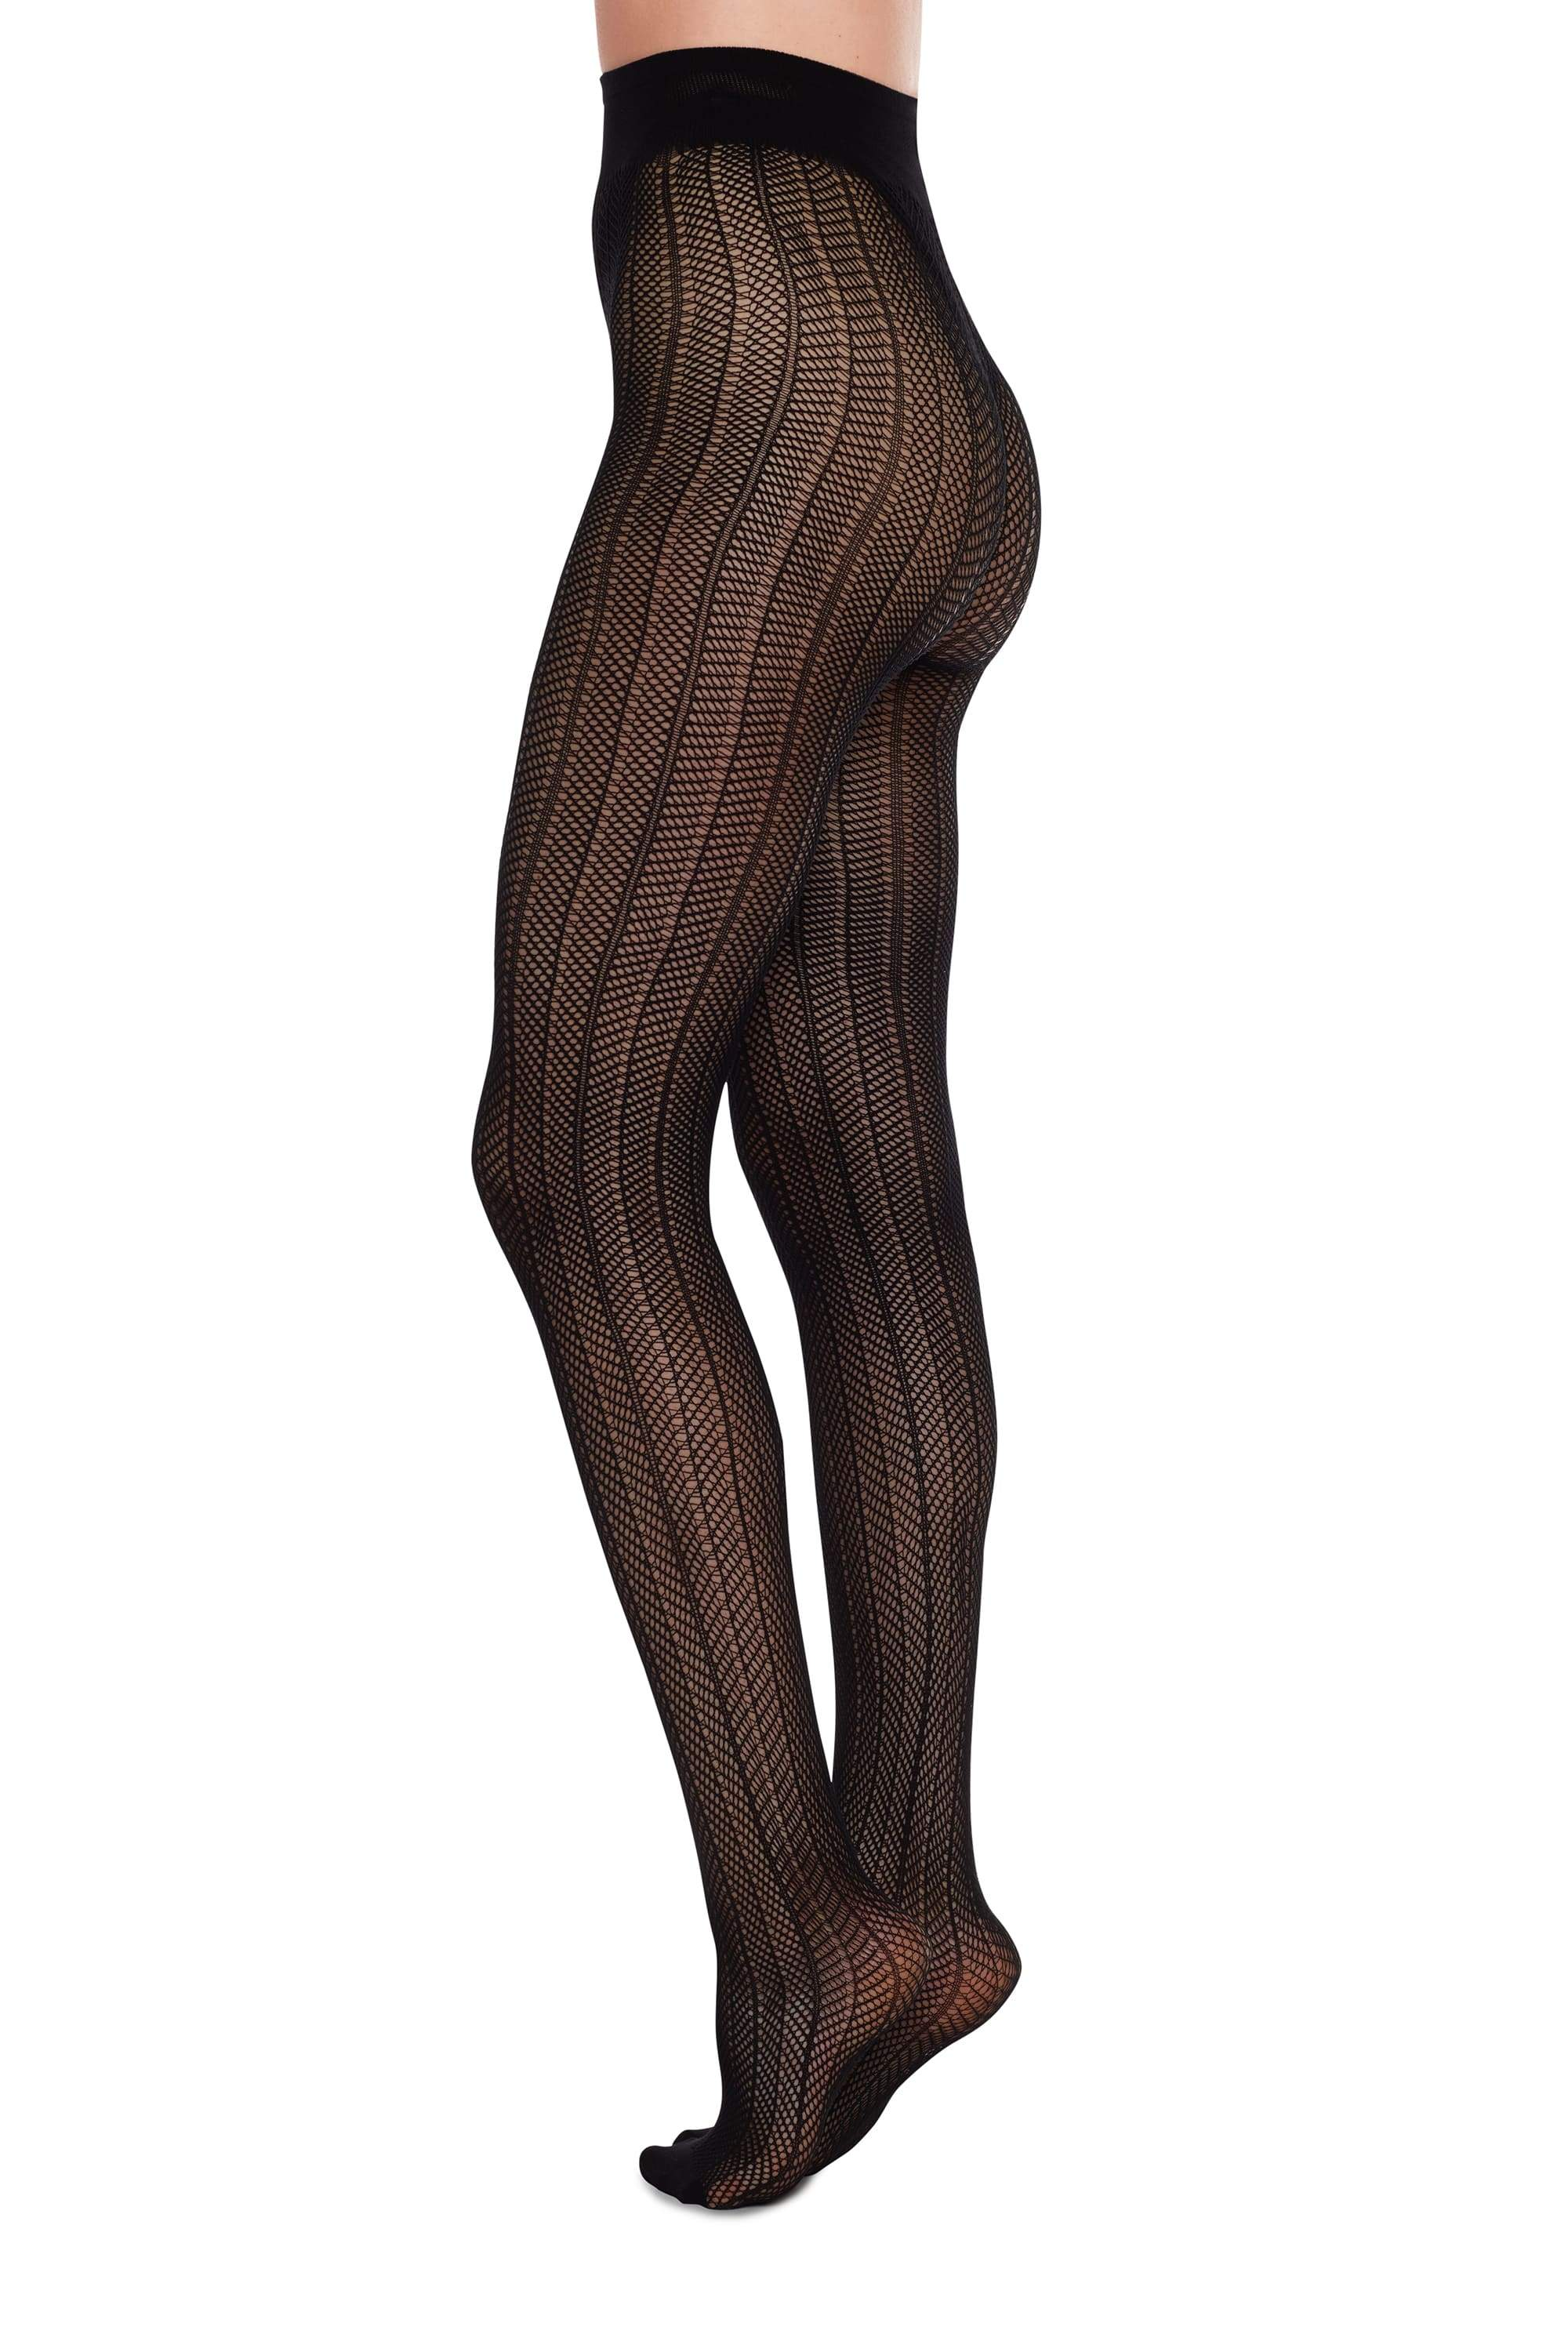 Astrid net stockings tights black from thegreenlabels